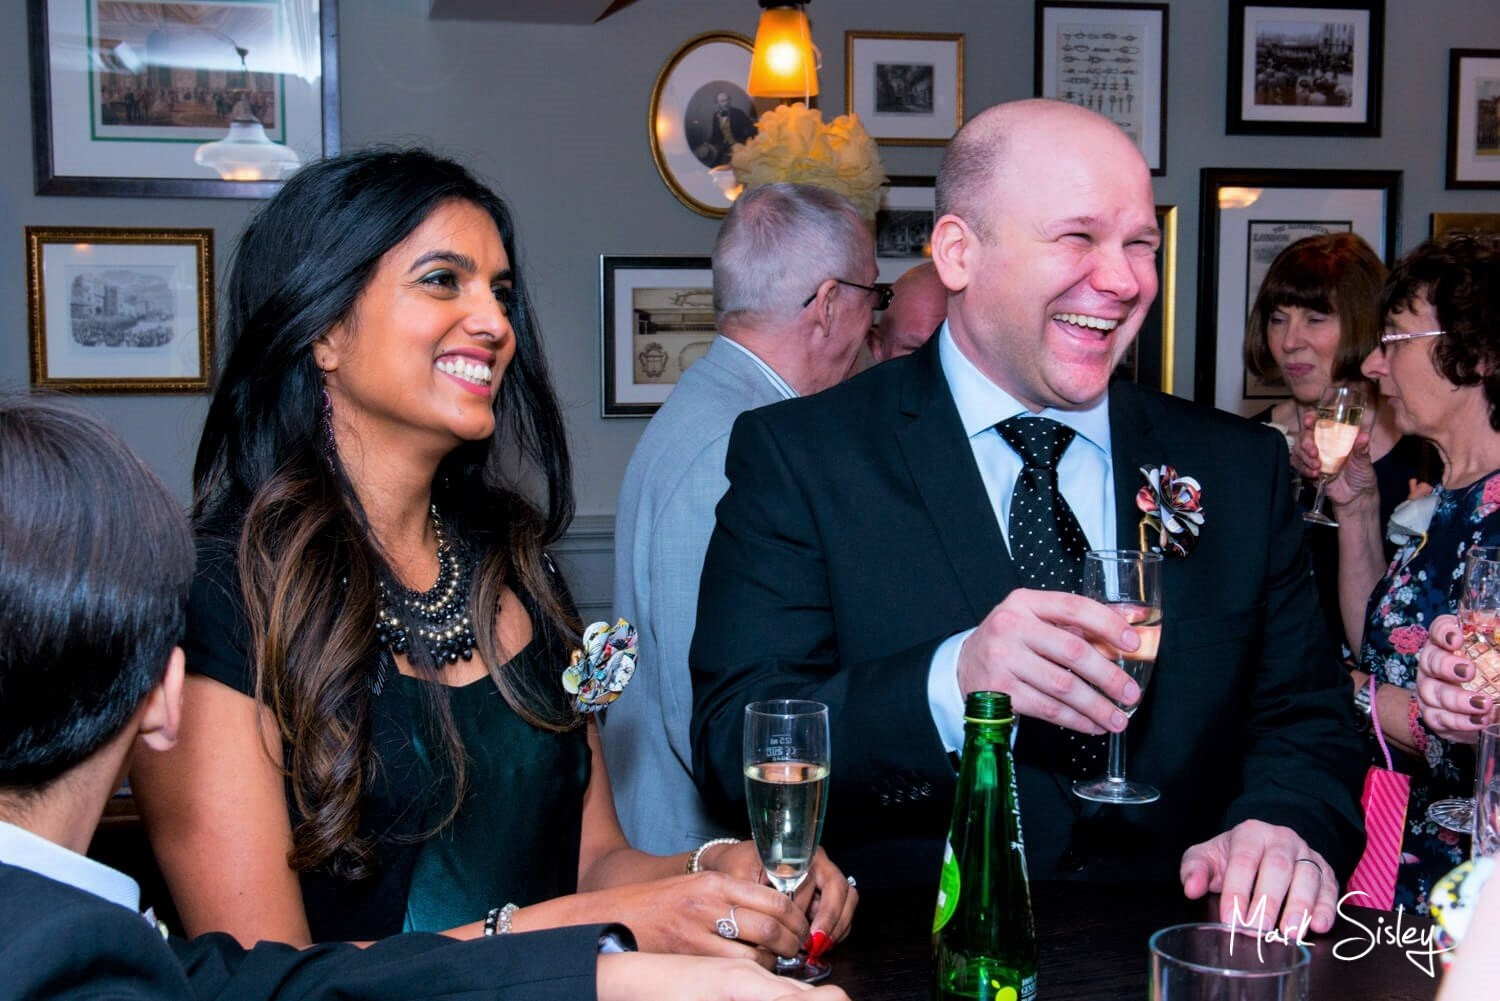 Beaumont Estate winter wedding drinks reception captured by Mark Sisley photography